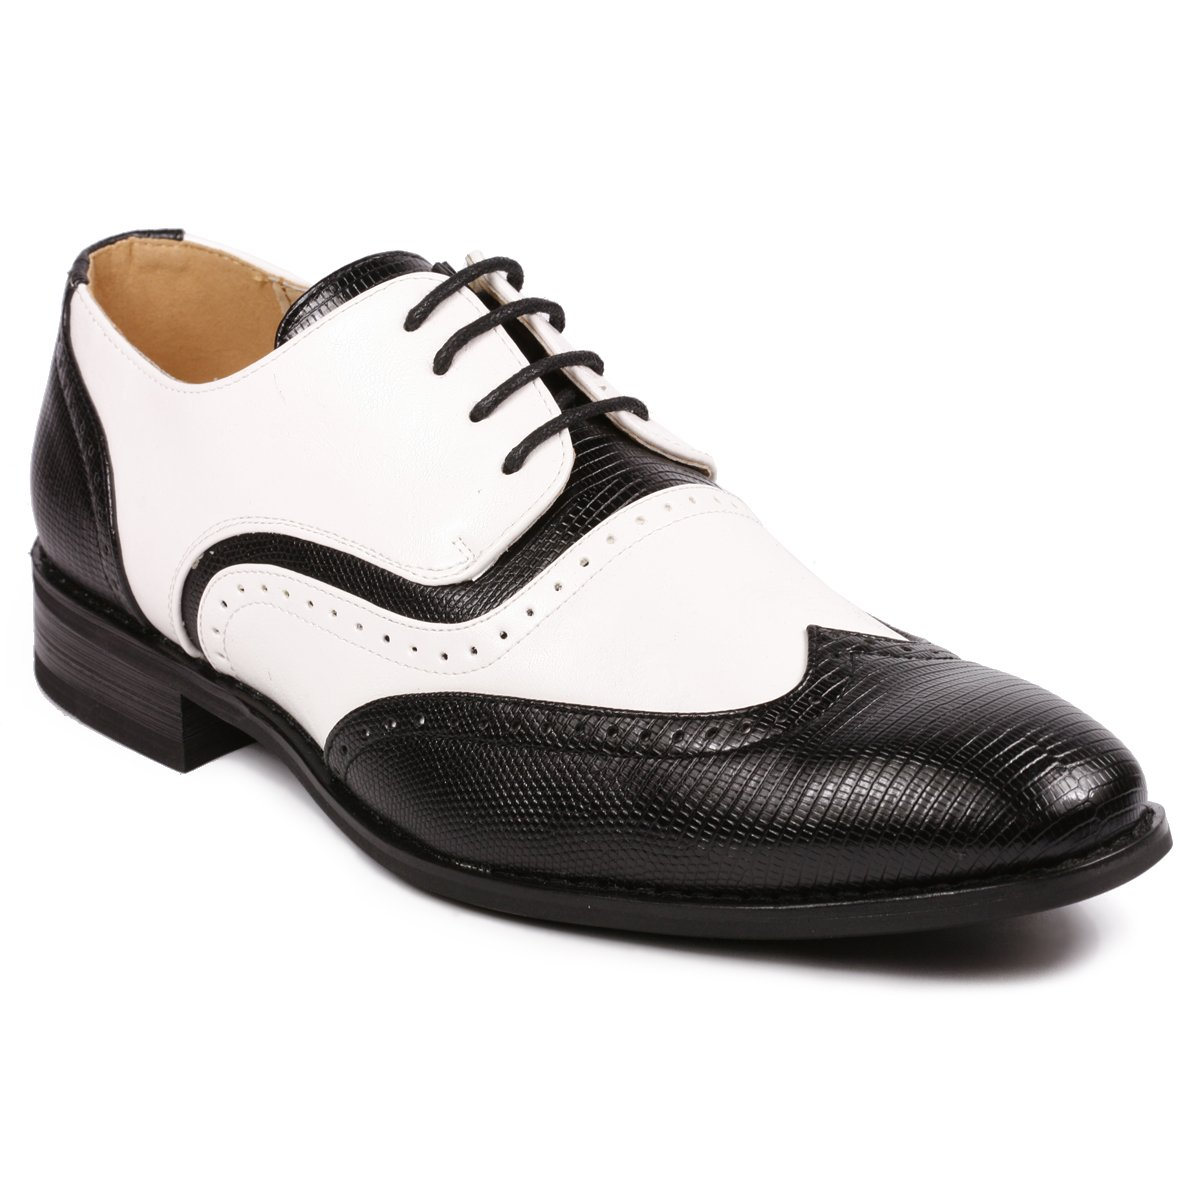 Mens 1920s Shoes History and Buying Guide Metrocharm MC113 Mens Wing Tip Perforated Lace Up Oxford Dress Shoes $39.99 AT vintagedancer.com